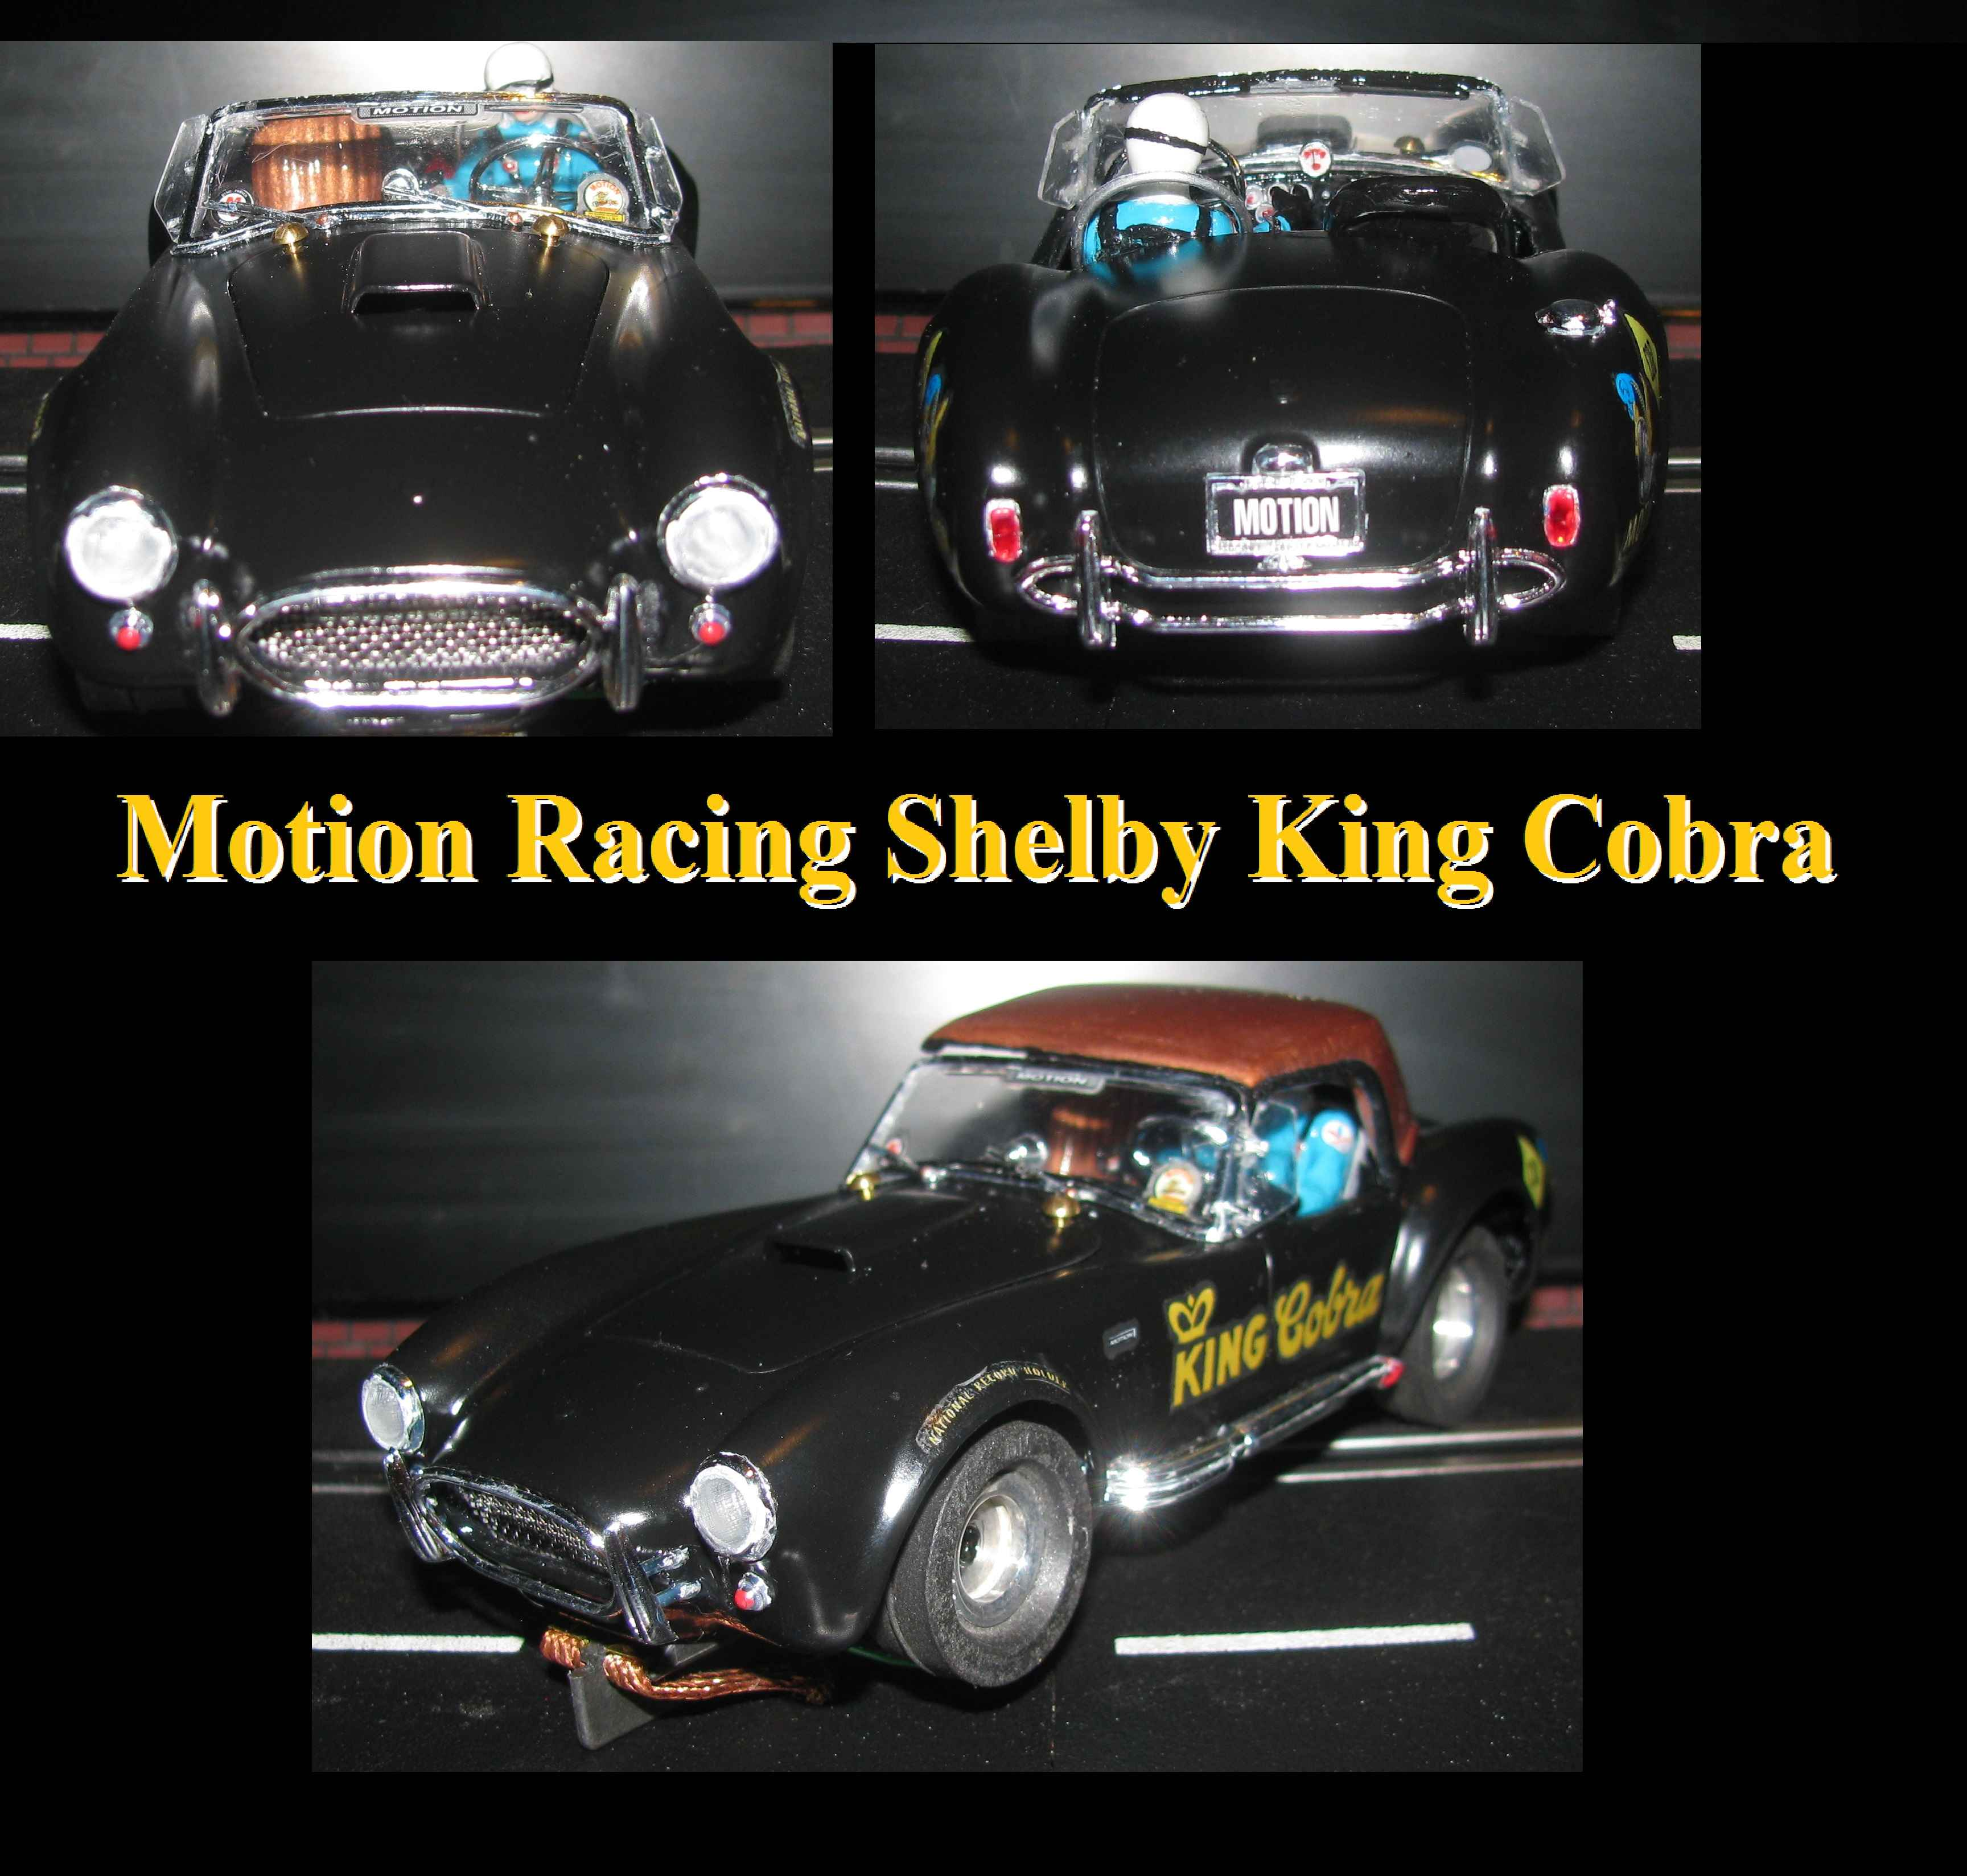 """*SOLD* *RESERVED FOR CHRIS, Special Combo Price* SALE * 1965 Shelby Cobra 427 Motion Performance """"King Cobra"""" Racer 1:24 Scale Slot Car"""